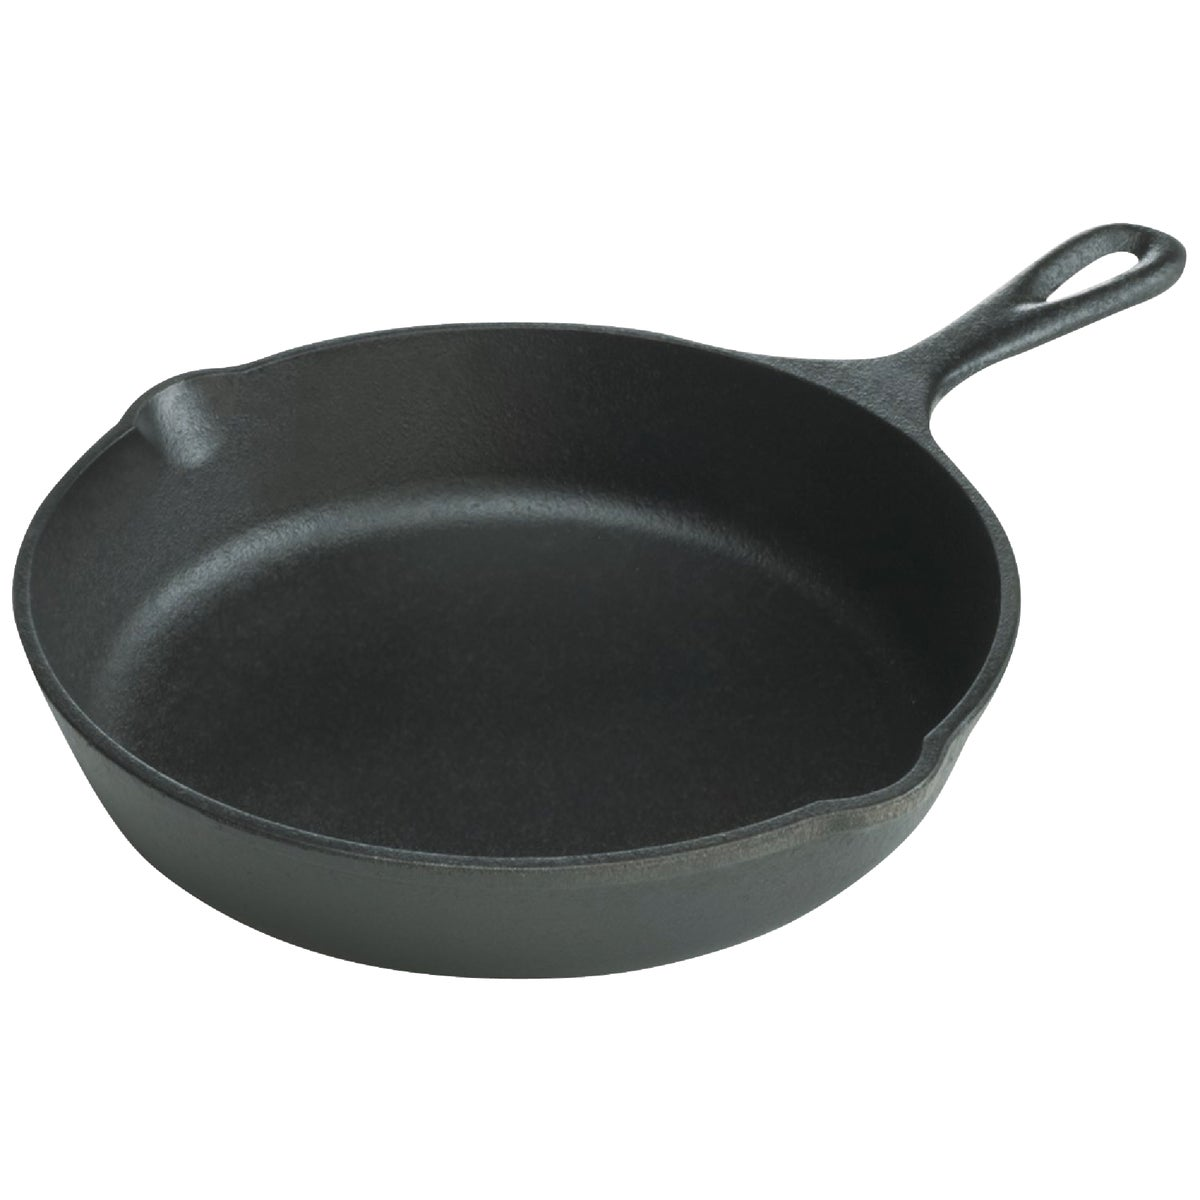 "8"" SKILLET - L5SK3 by Lodge Mfg Co"